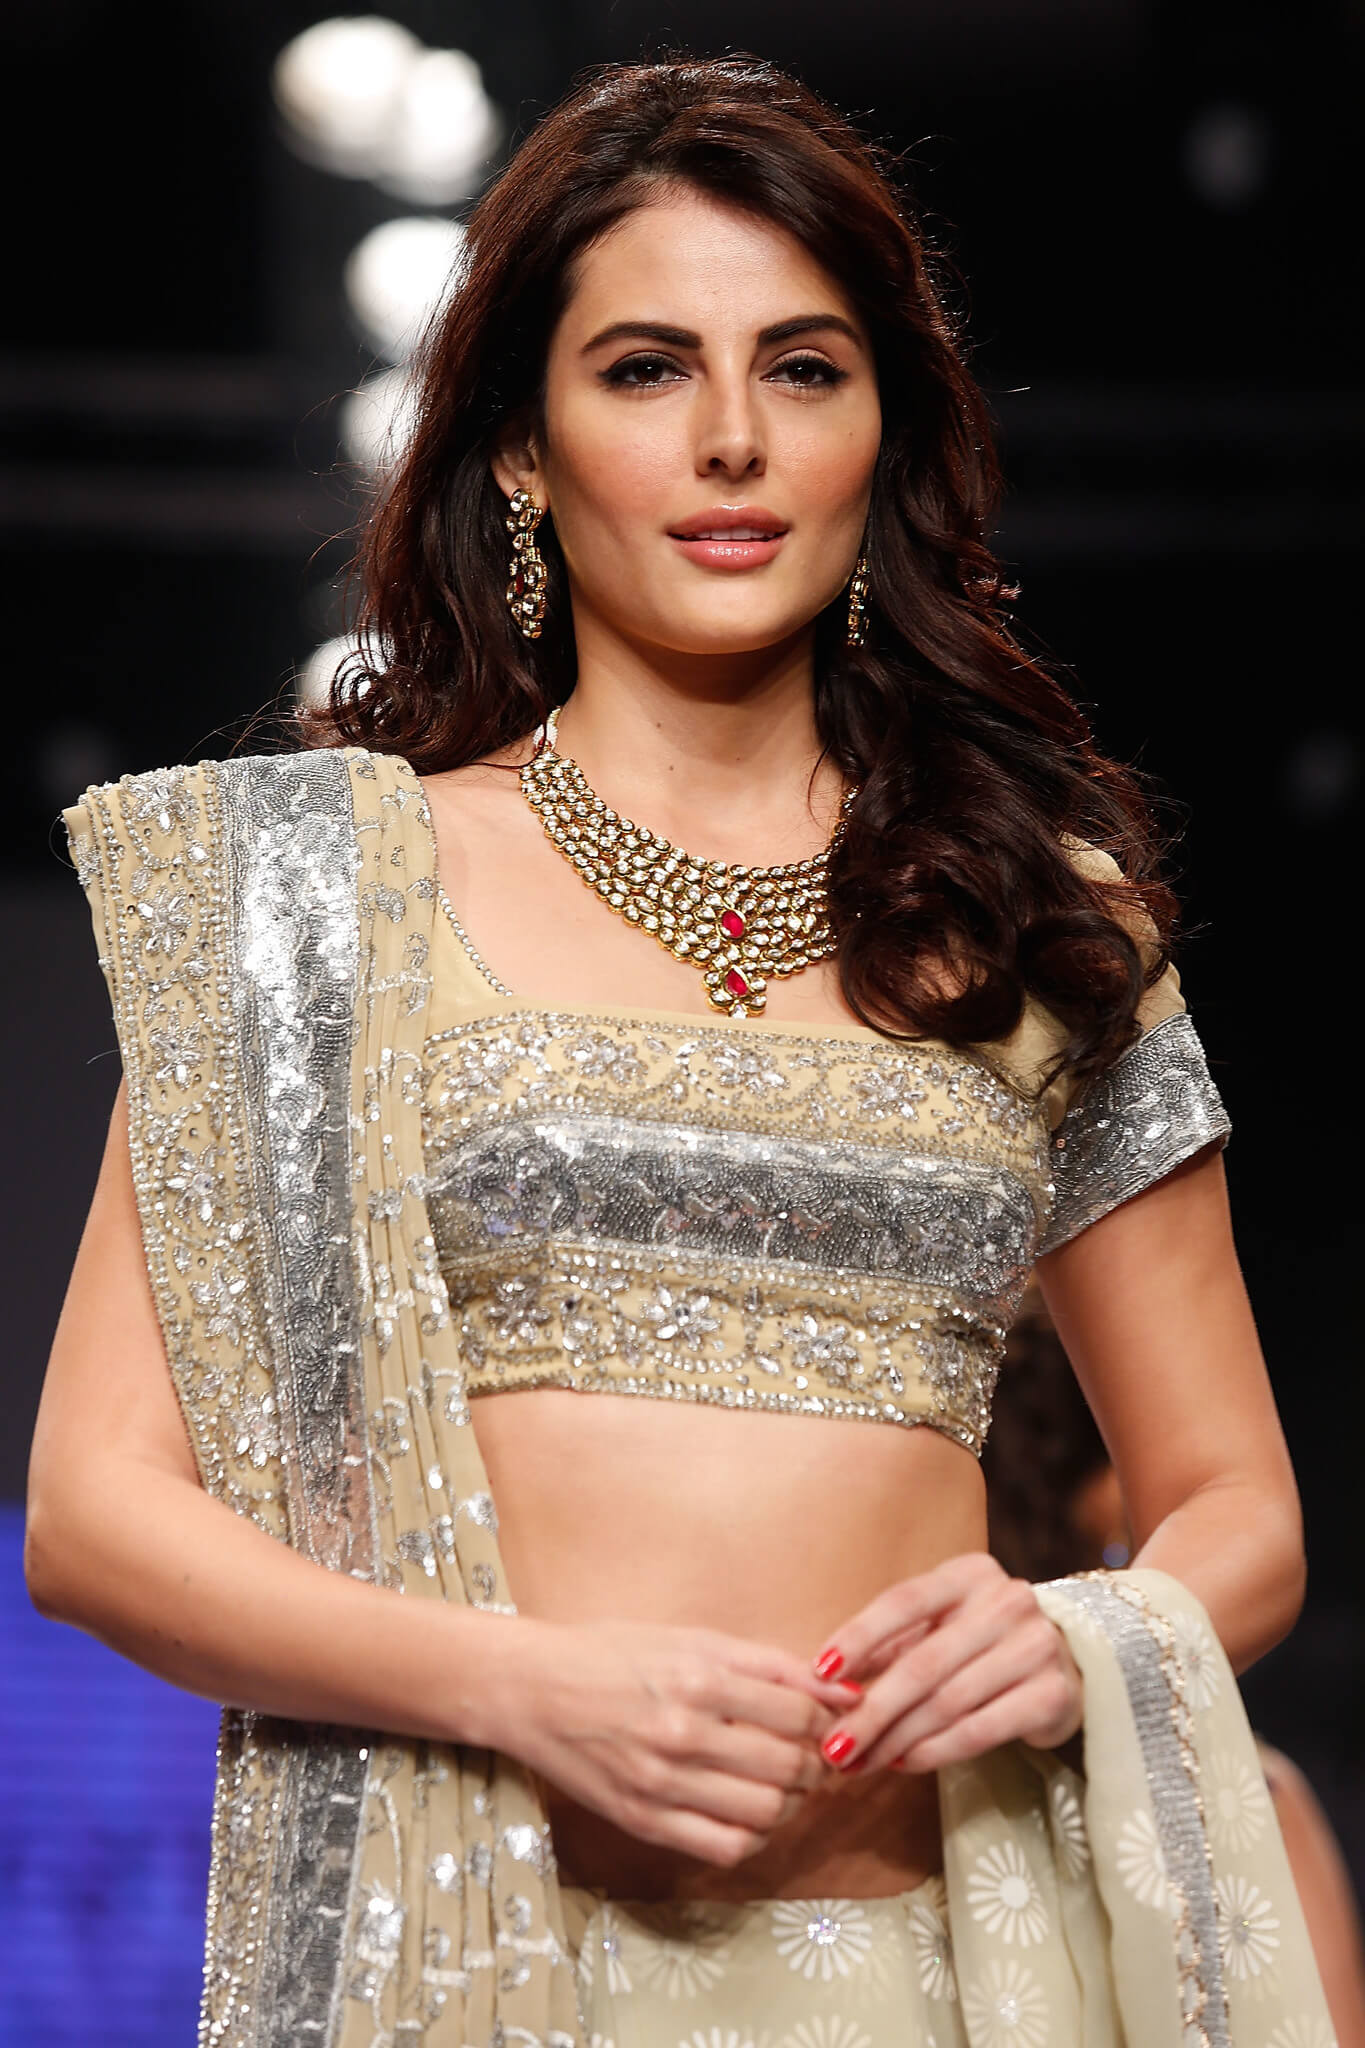 Mandana Karimi Age, Husband, Height, Marriage, Biography, Wedding, Bigg Boss, Wallpaper, Pics, Instagram, Facebook, Twitter (39)